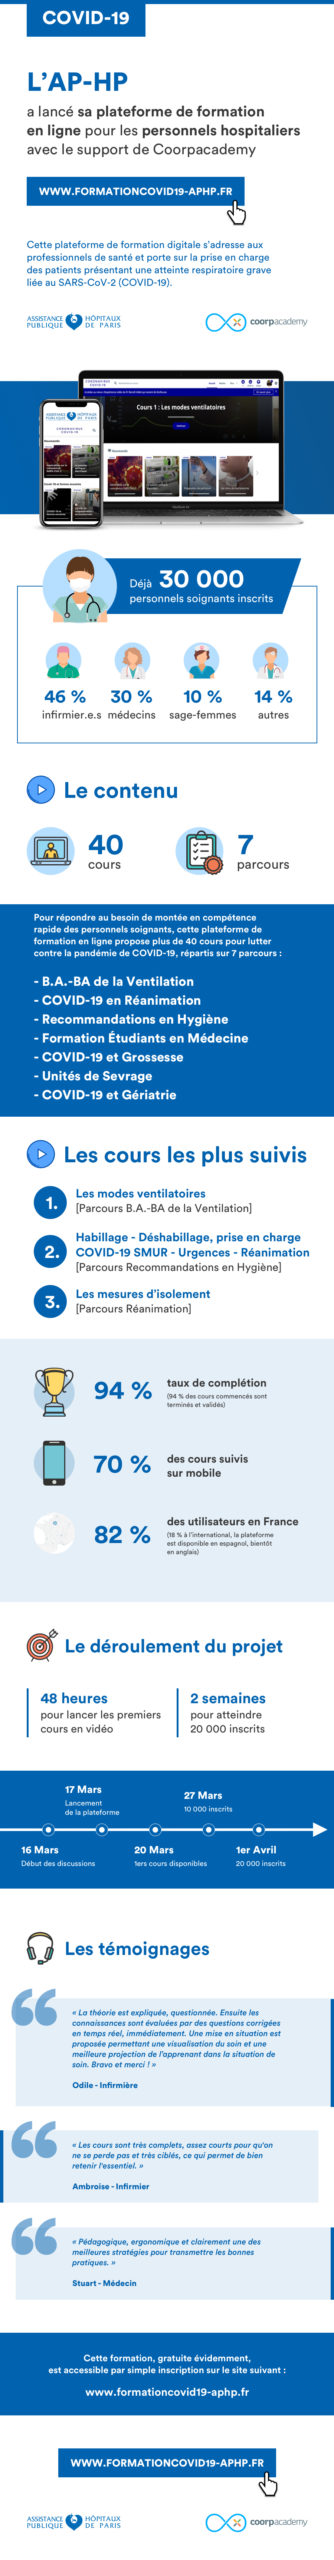 Infographie AP-HP et Coorpacademy